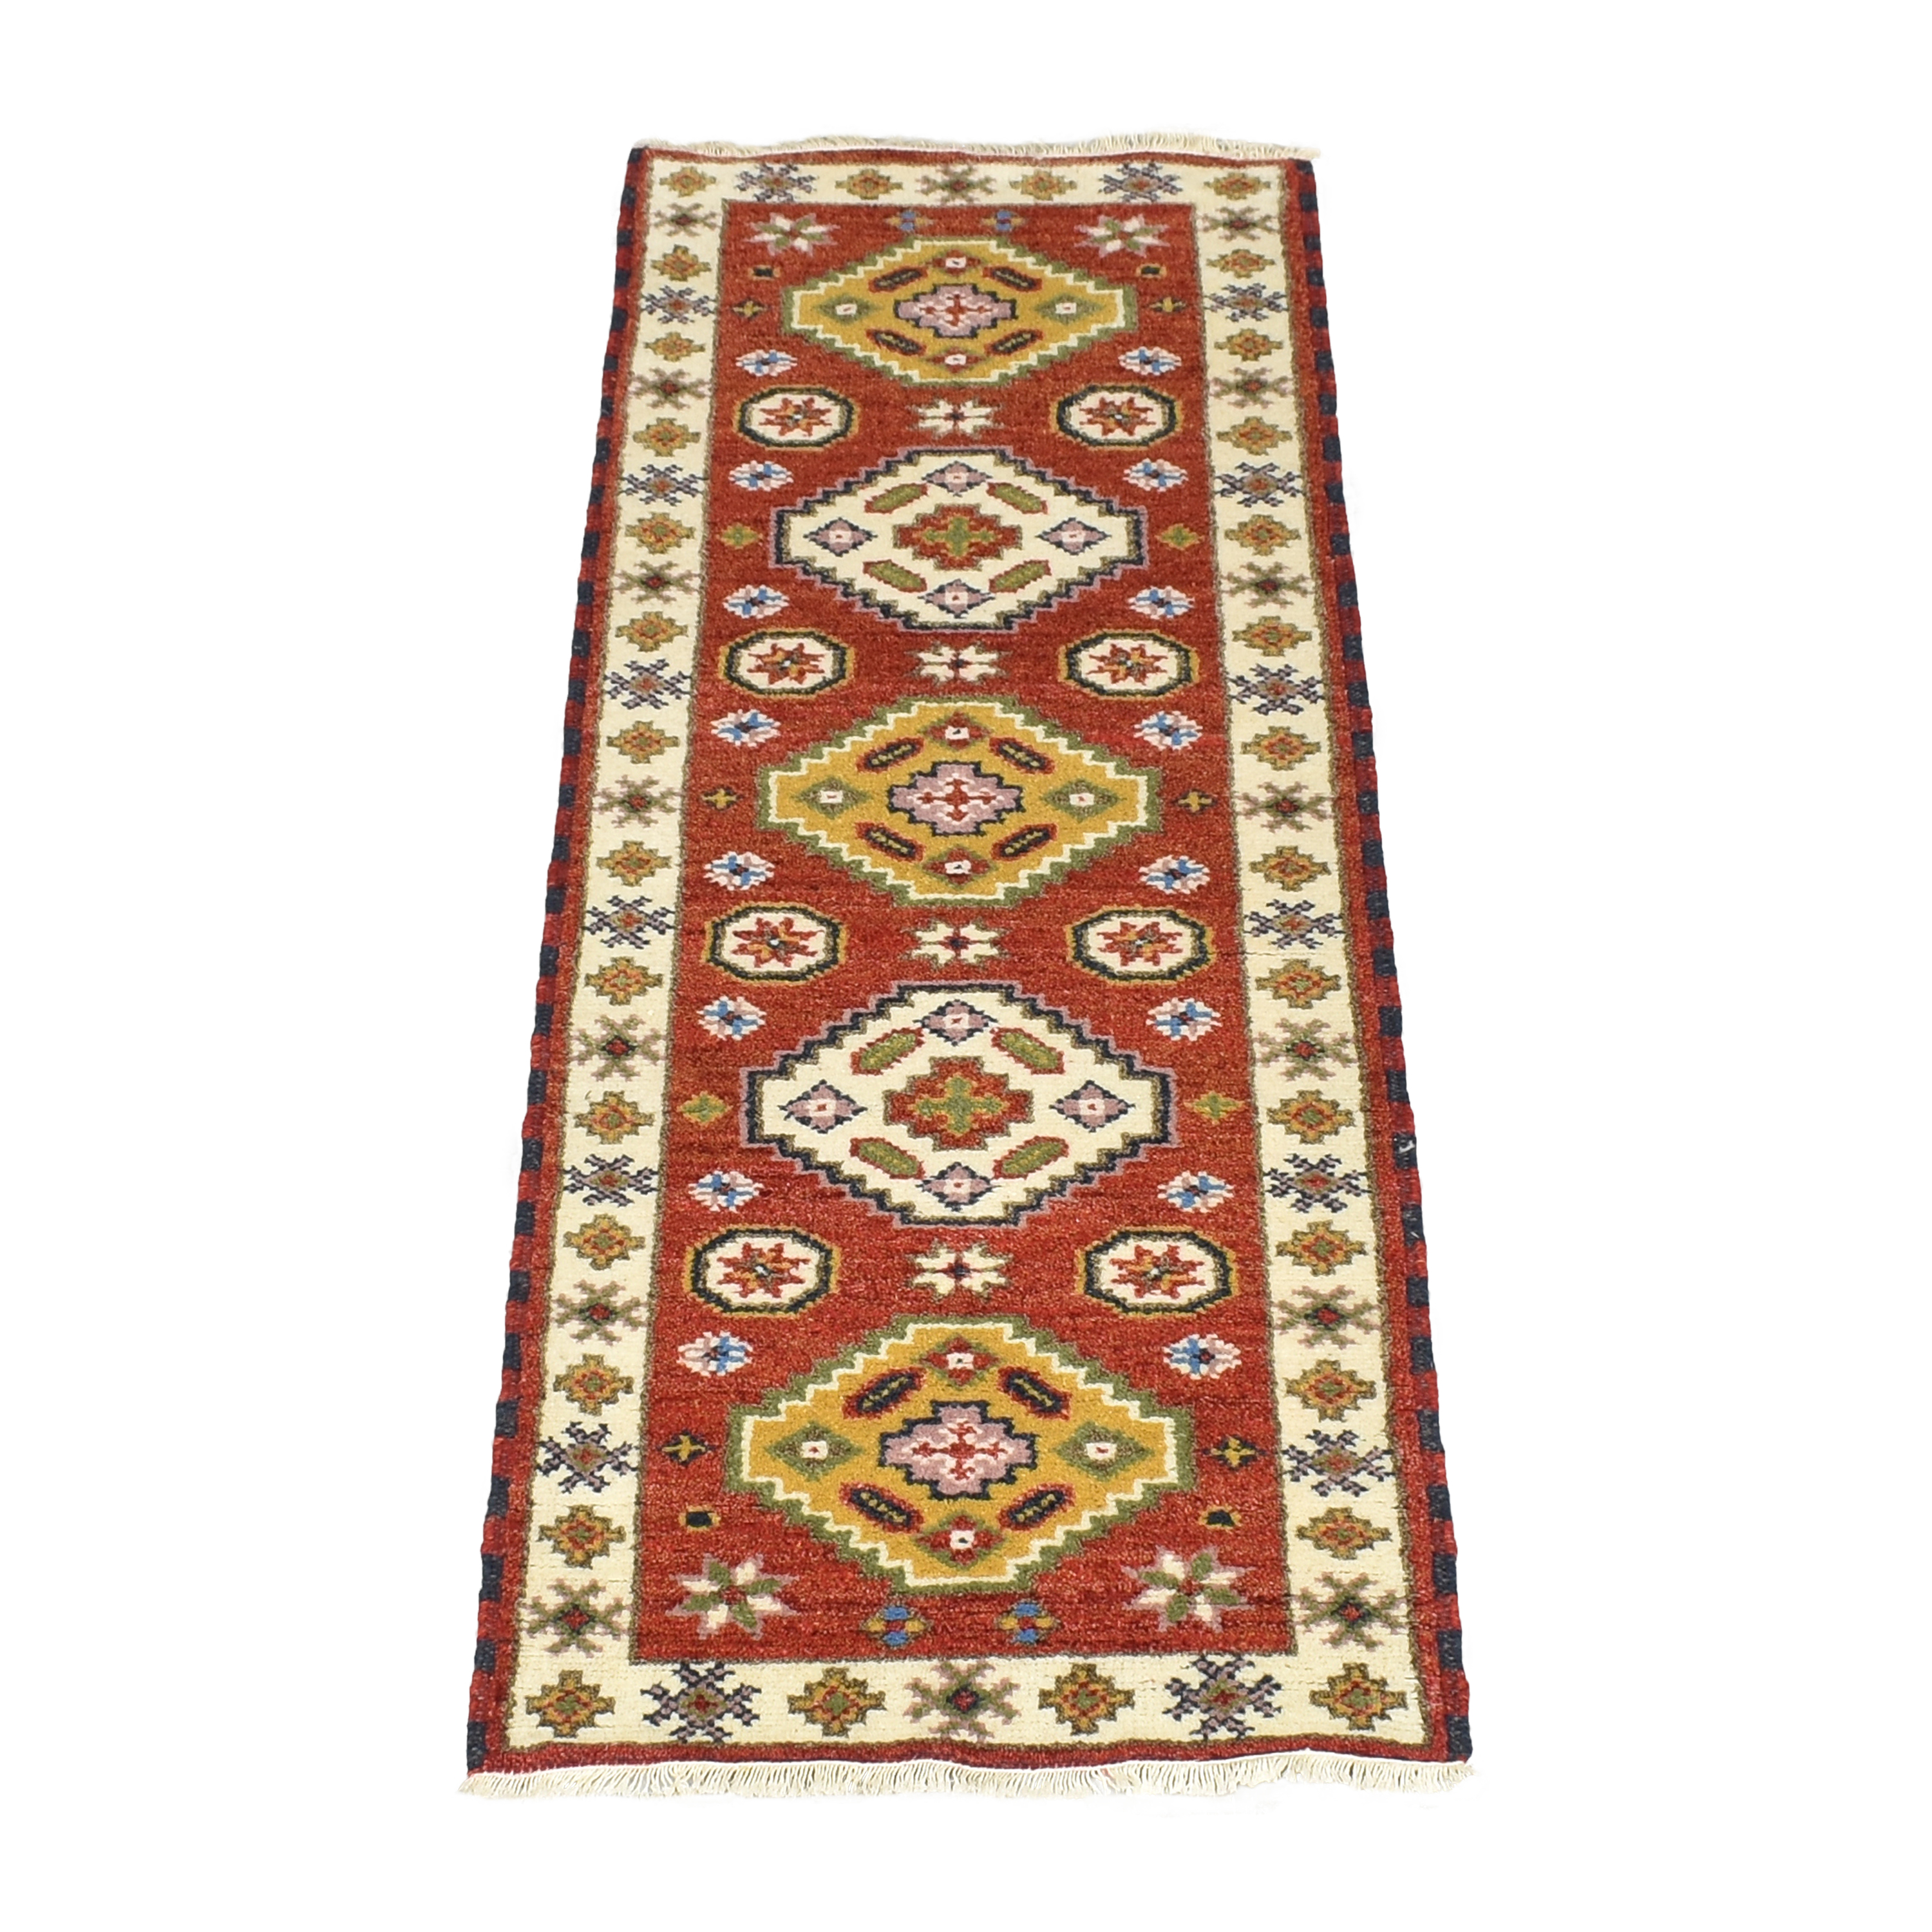 Patterned Runner discount